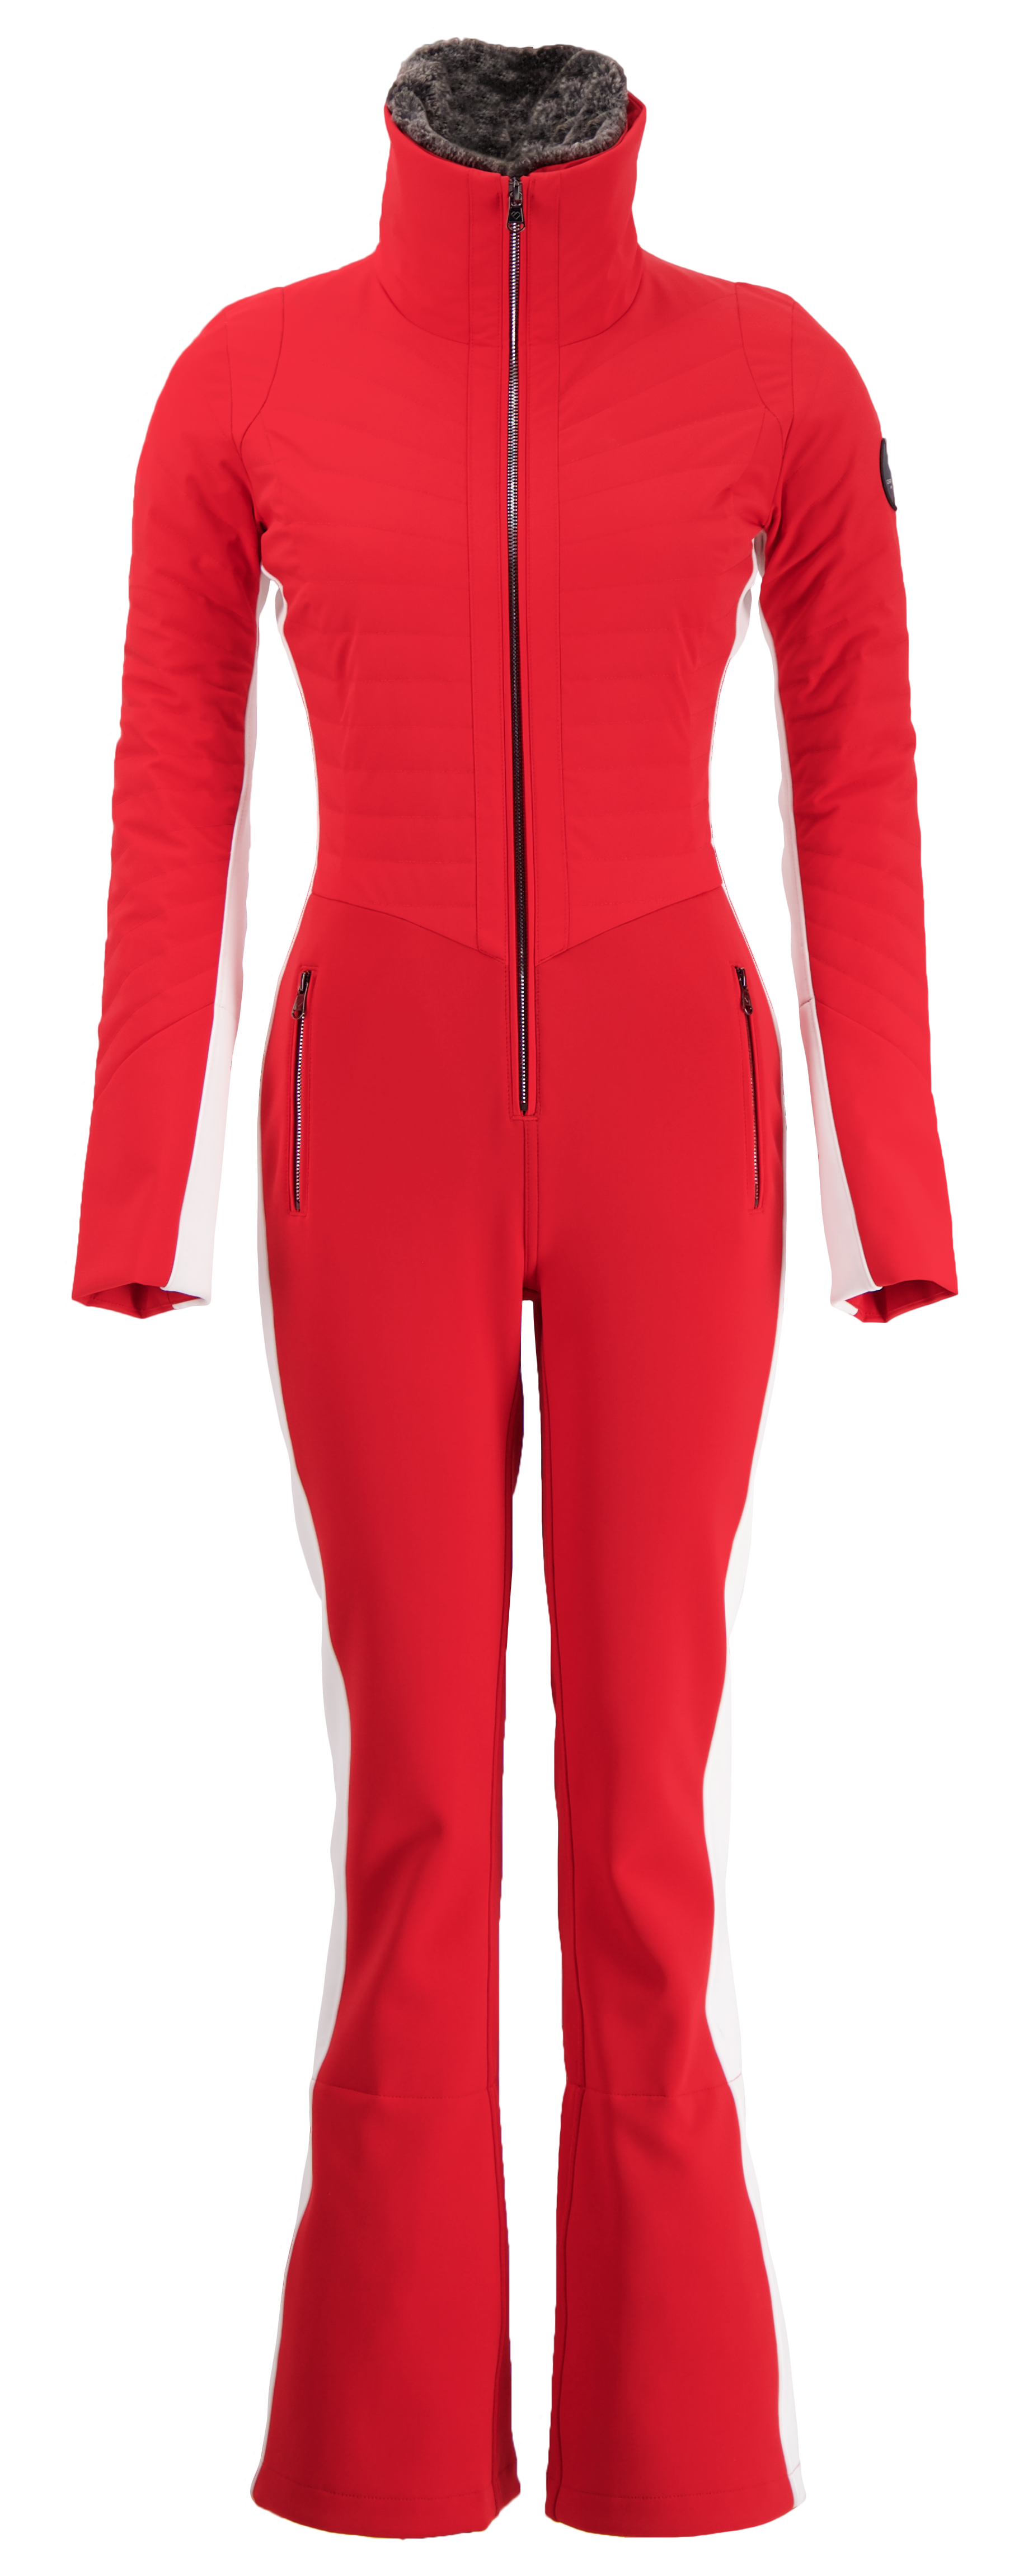 When it comes to keeping skiers warm, trust Norway's Helly Hansen, which developed the first technical baselayers way back in the 1970s. Top and bottom both sport hydrophobic fibers that transport water away from your skin. Tiny patterns woven into the fabric facilitate the wicking. [$45 for the top, $55 for the bottomsl; hellyhansen.com]